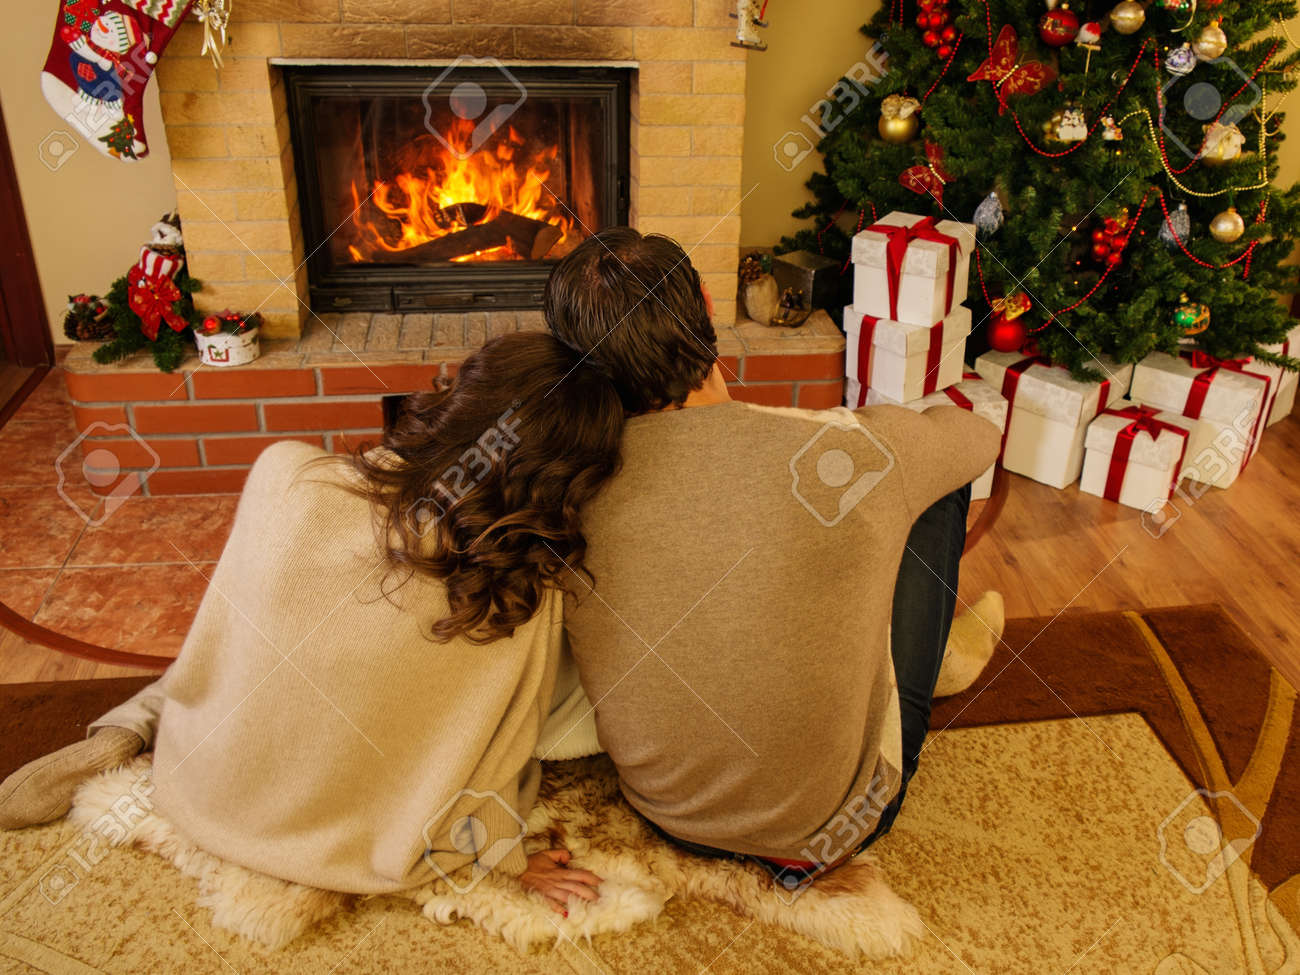 couple near fireplace in christmas decorated house interior stock